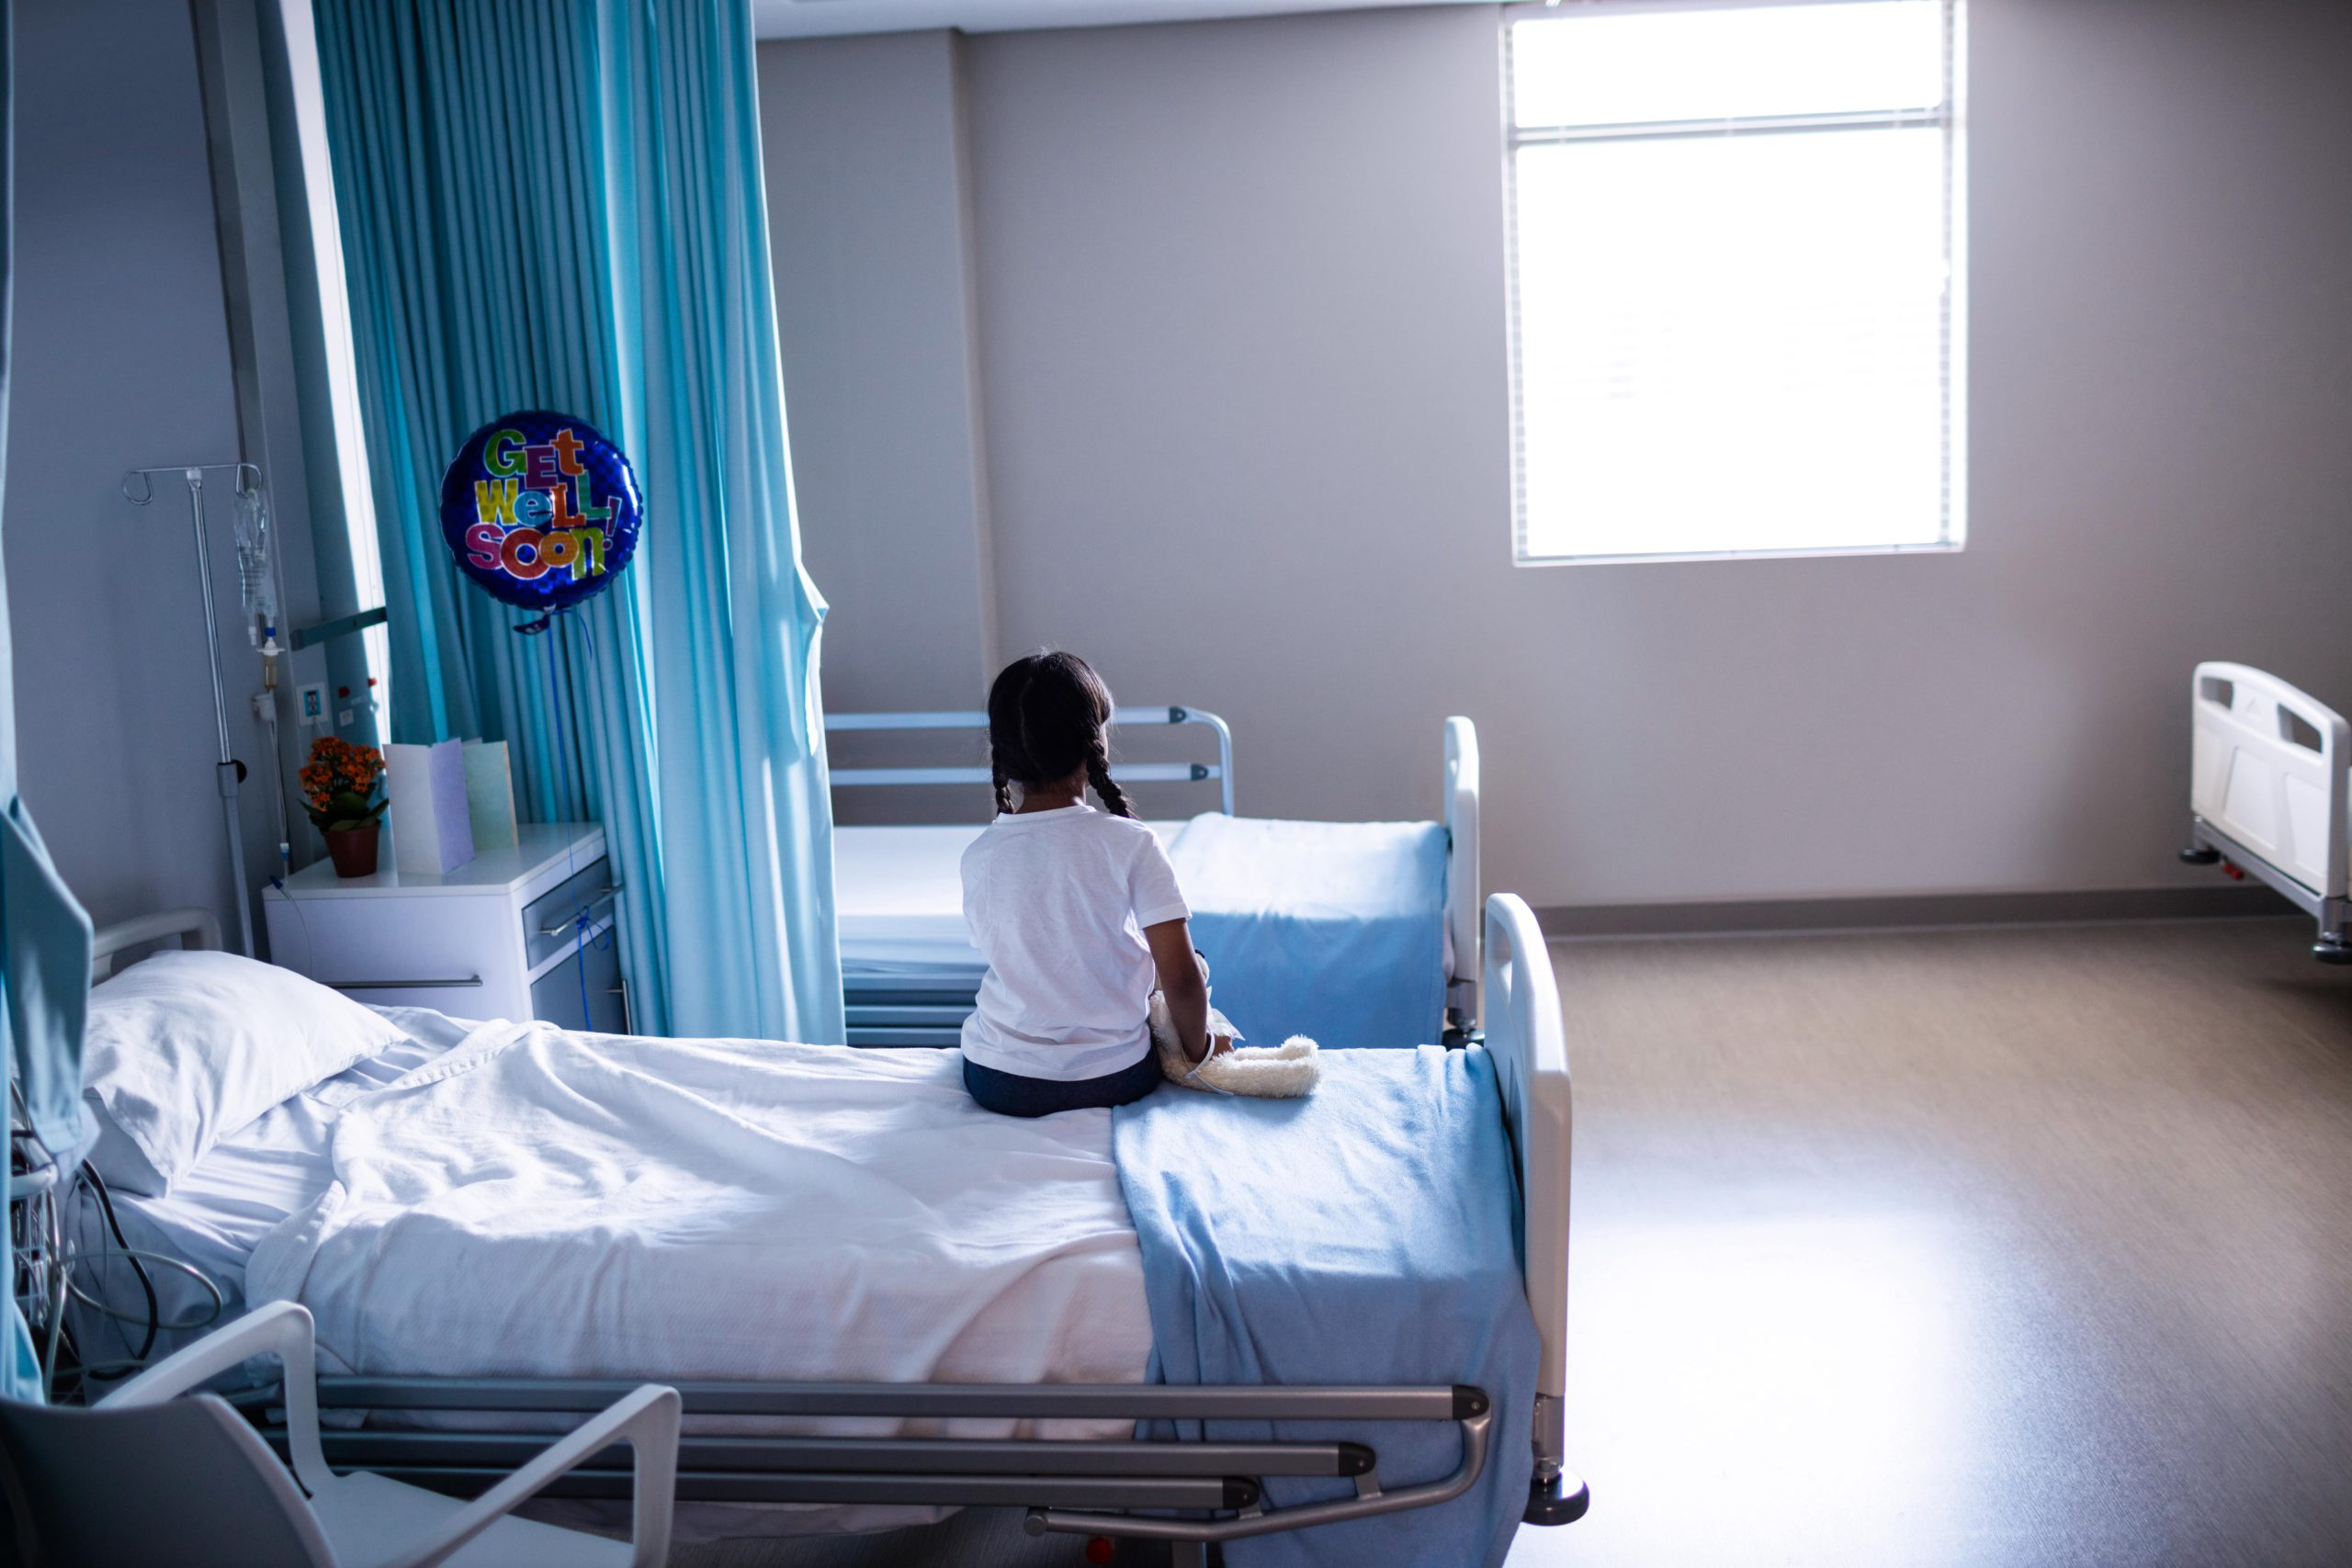 Can Hospital Patients Go Outside